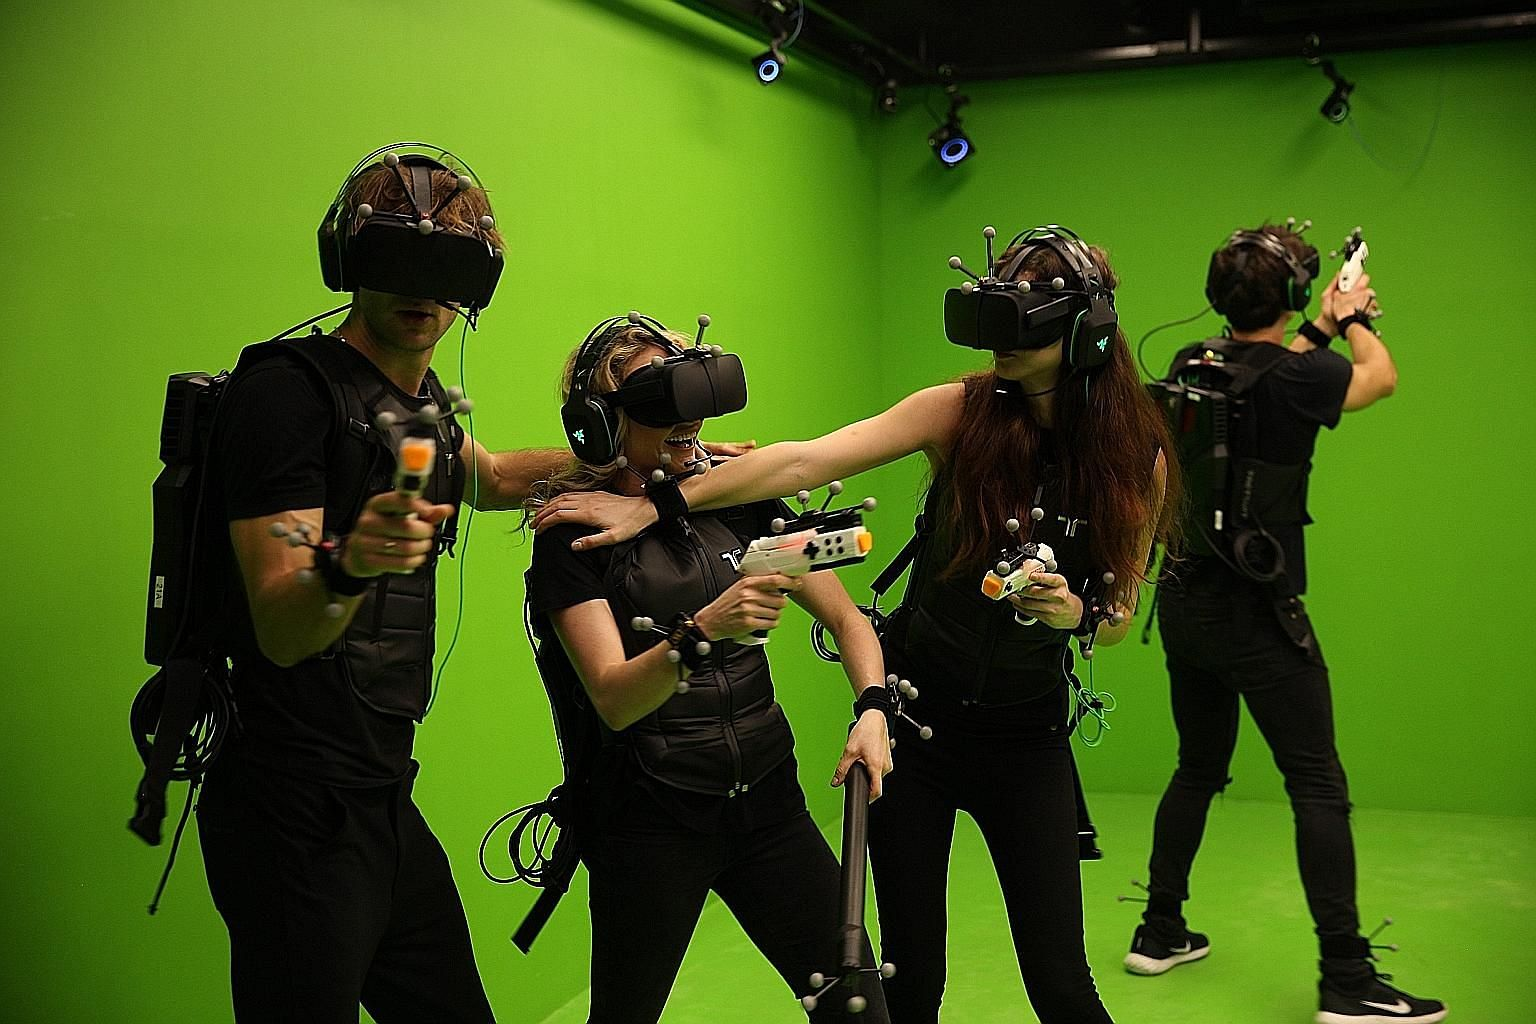 Hong Kong-based Sandbox VR (above) is the latest in Singapore to offer gamers a chance to immerse themselves in a virtual world.